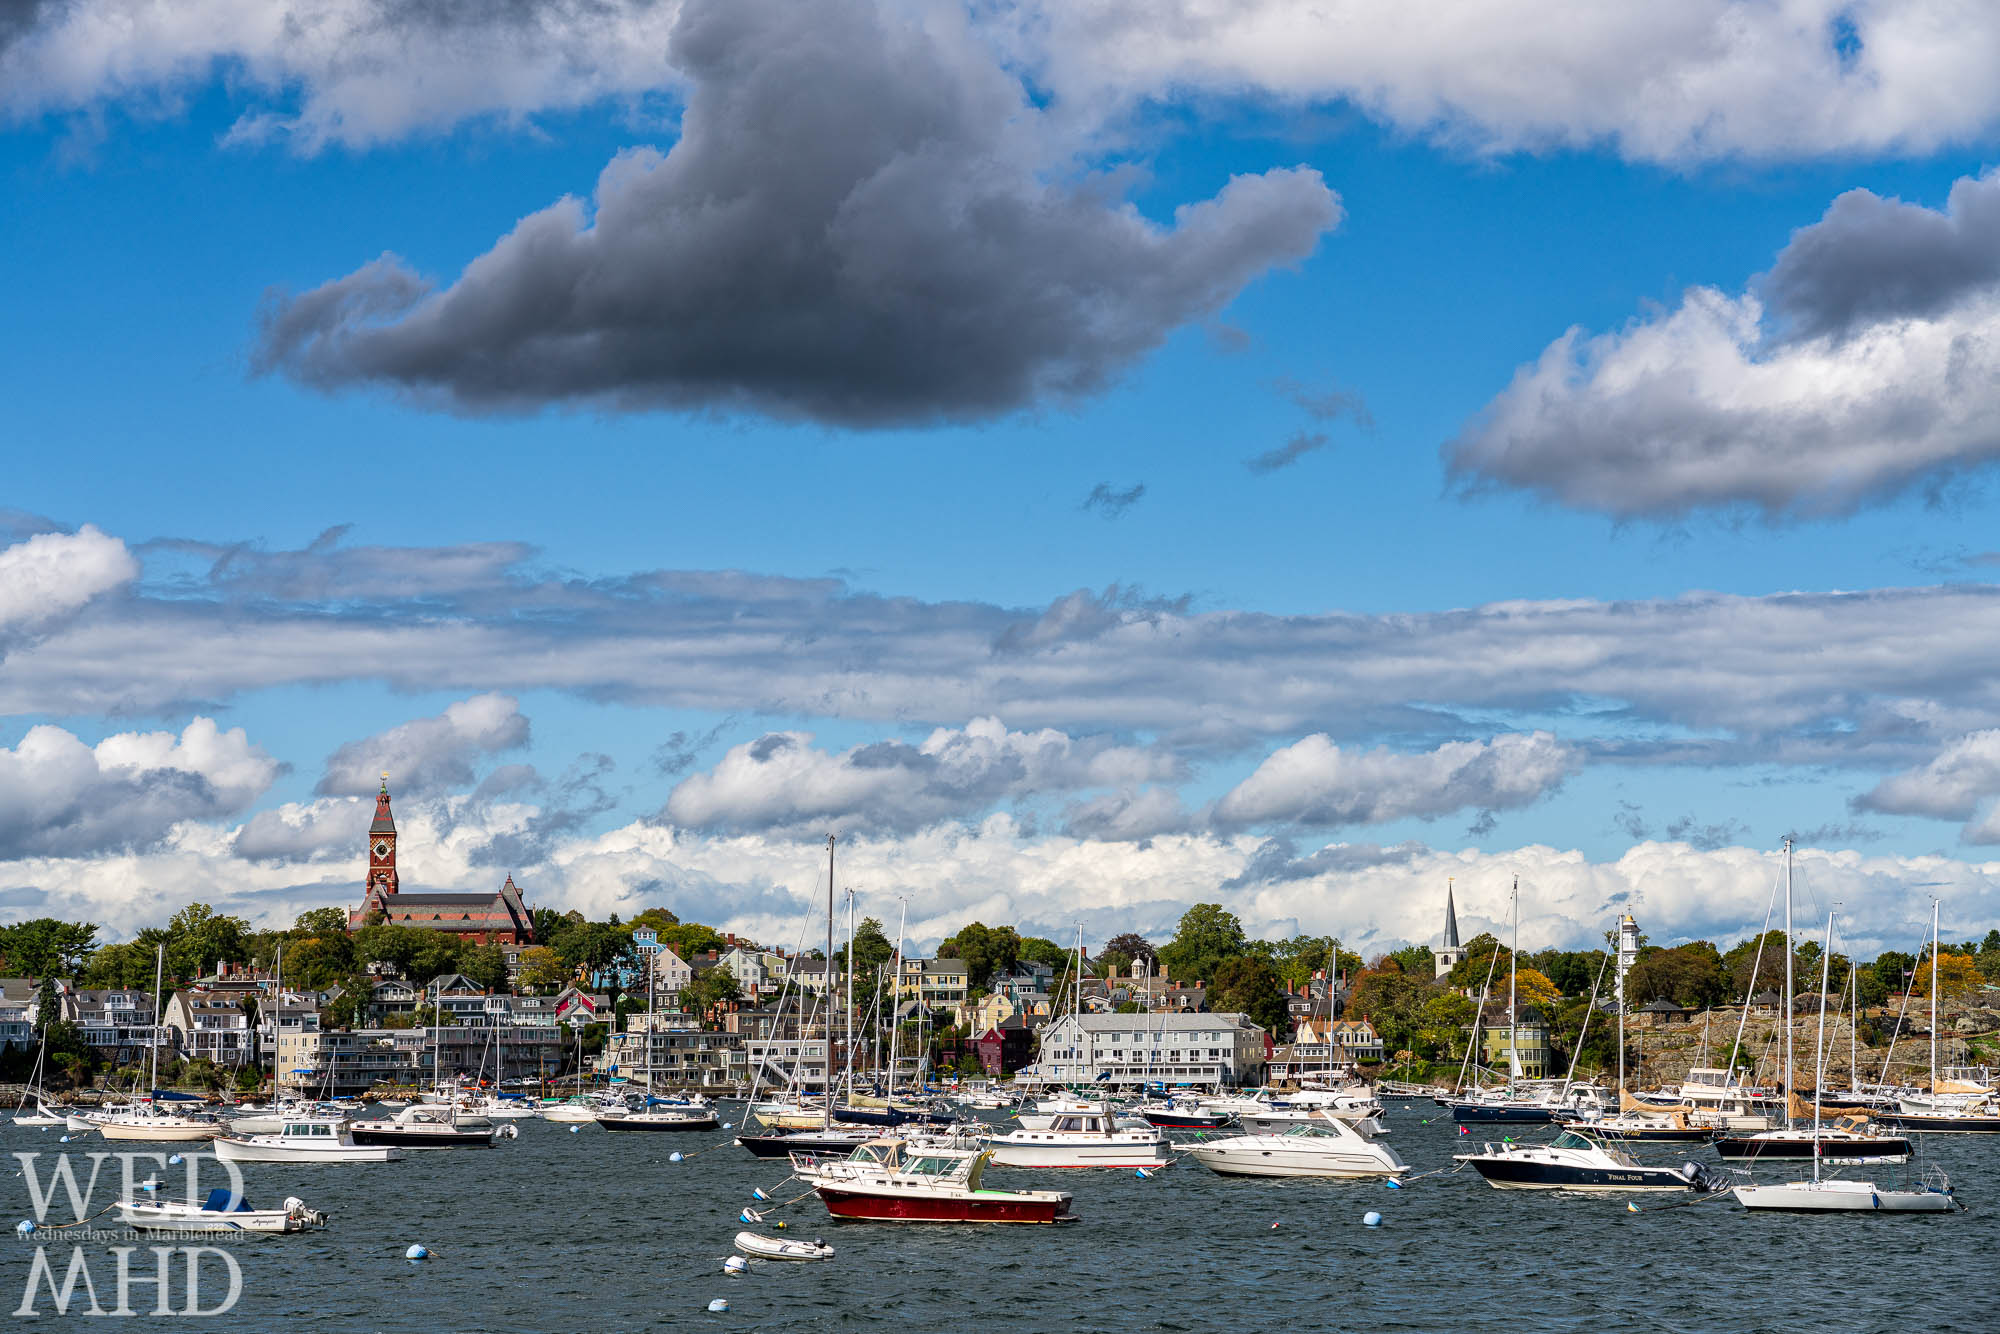 Abbot Hall, St. Michaels and the Grace Community Church form a backdrop to a harbor filled with boats as seen from Parker Lane on the Neck